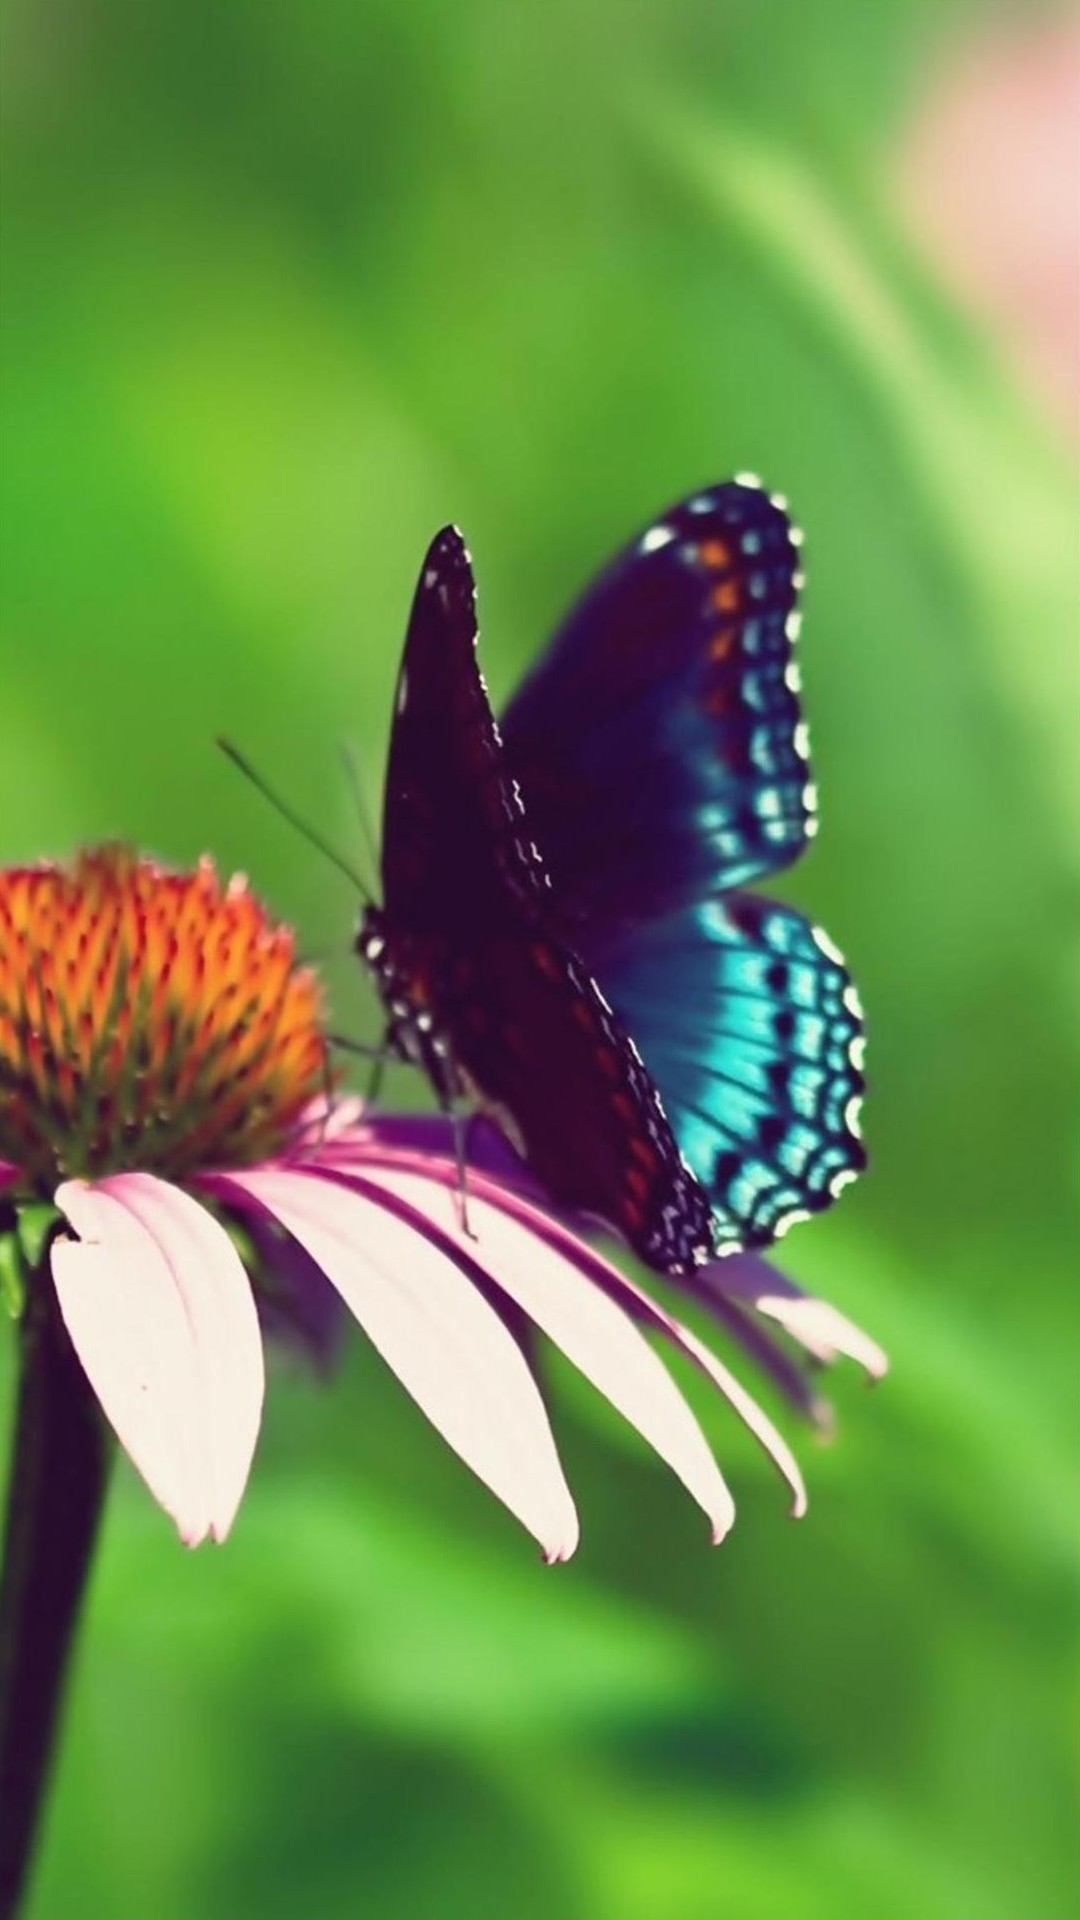 New Live Wallpapers For Iphone X Free Butterfly Backgrounds For Android Pixelstalk Net